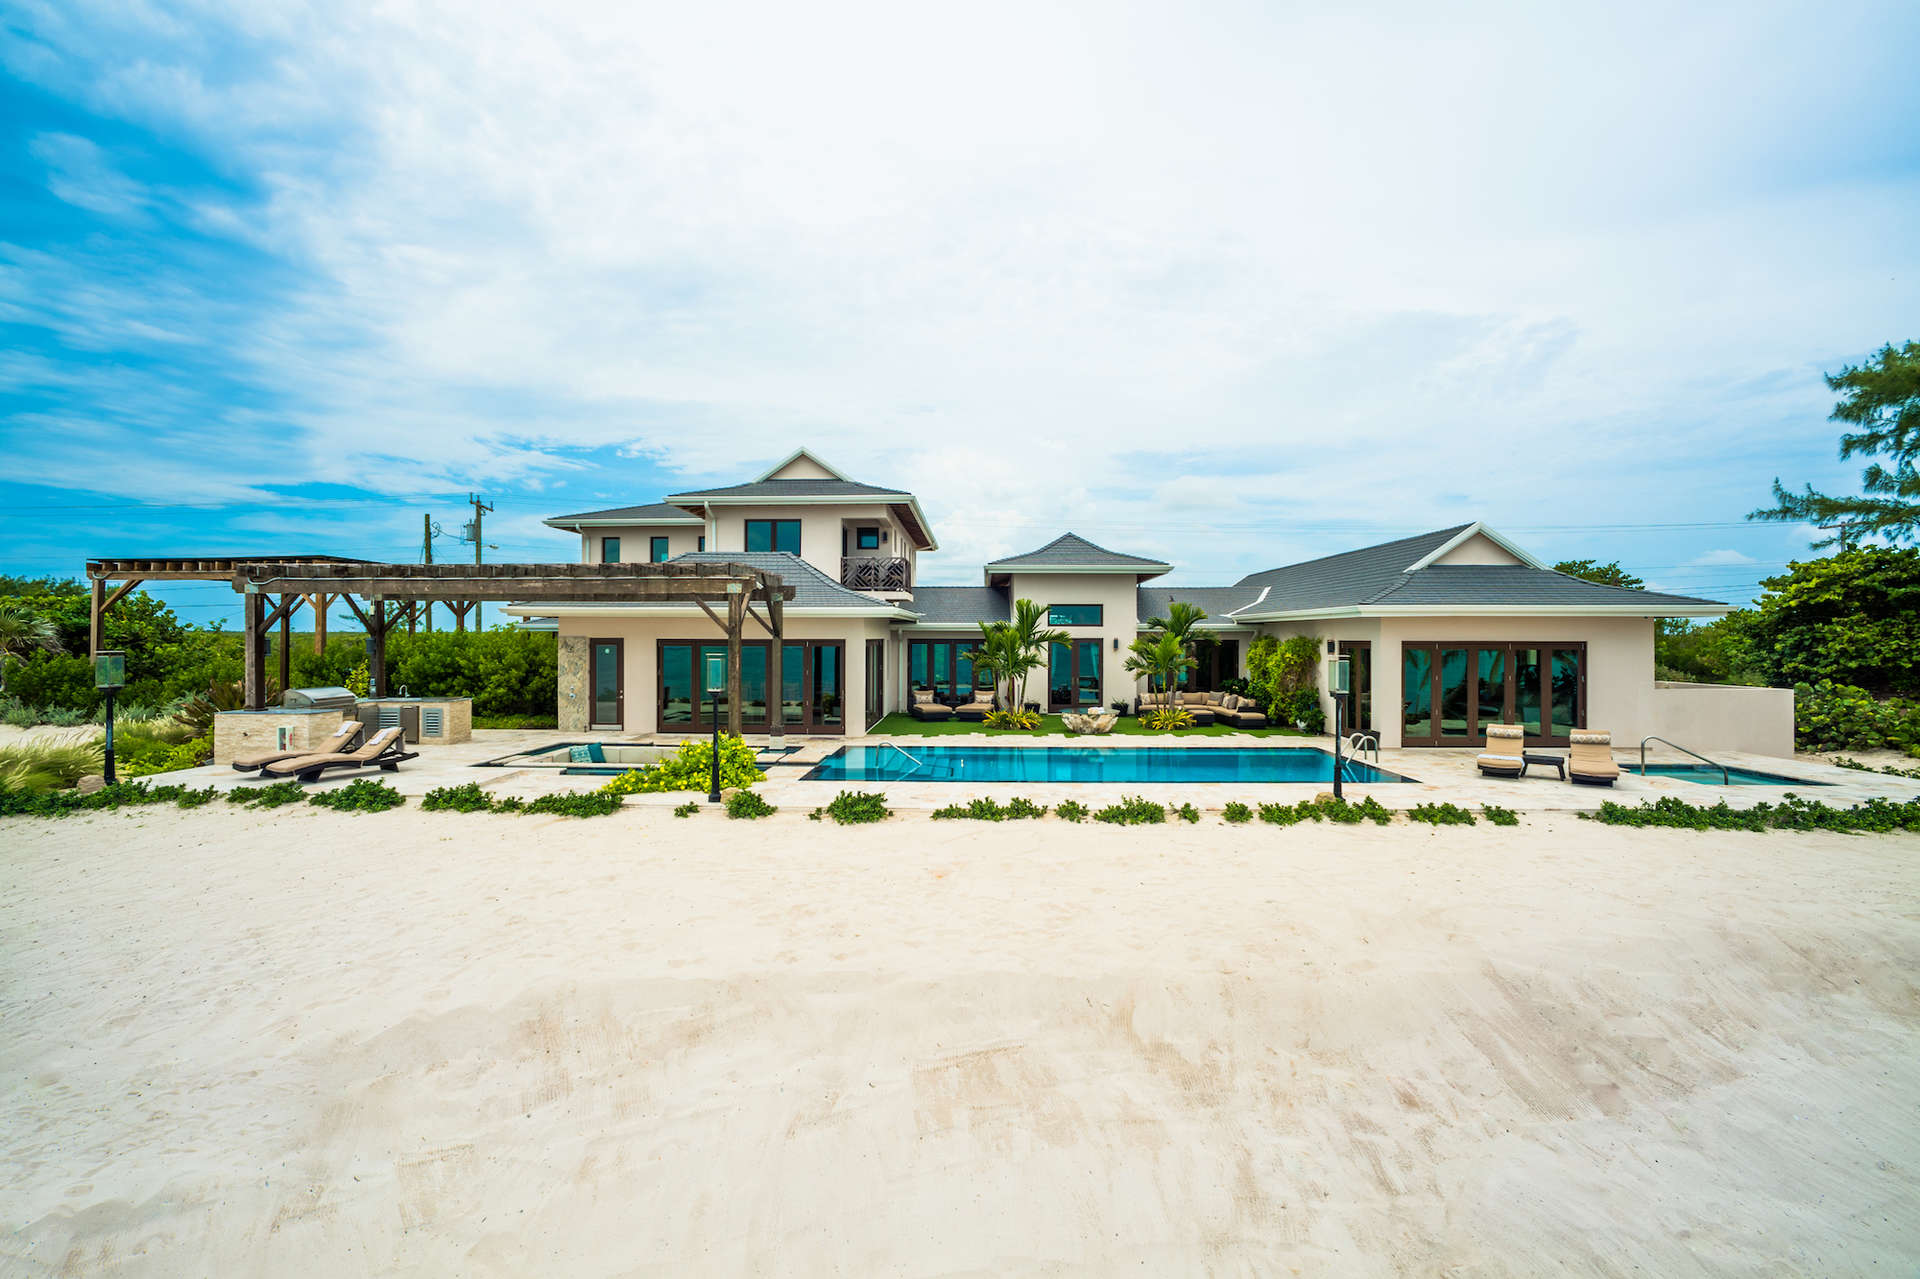 Luxury villa rentals caribbean - Cayman islands - Grand cayman - East end - Stepping Stone - Image 1/21